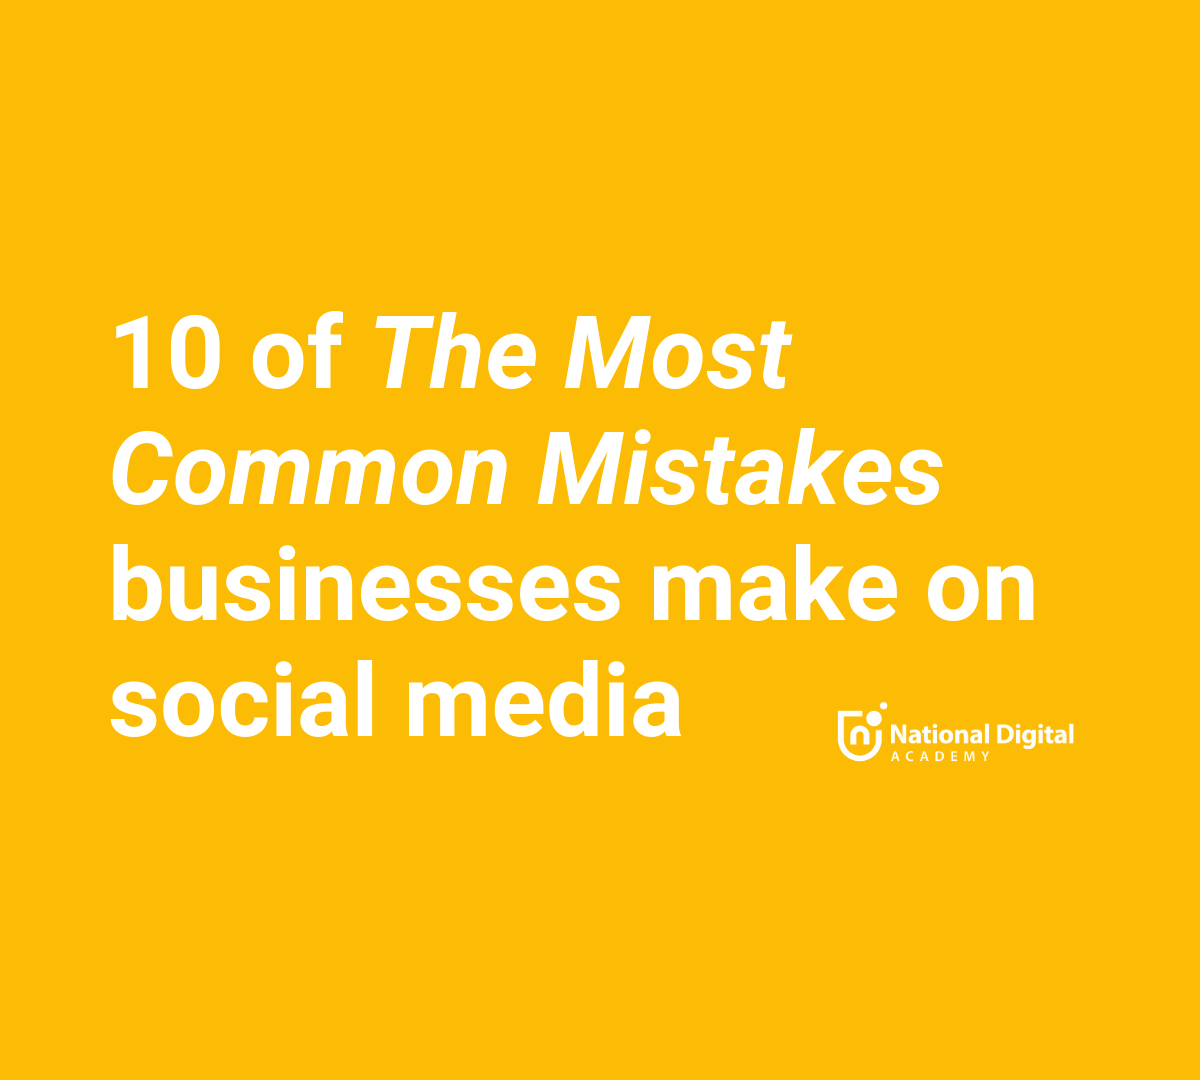 what are the most common social media mistakes